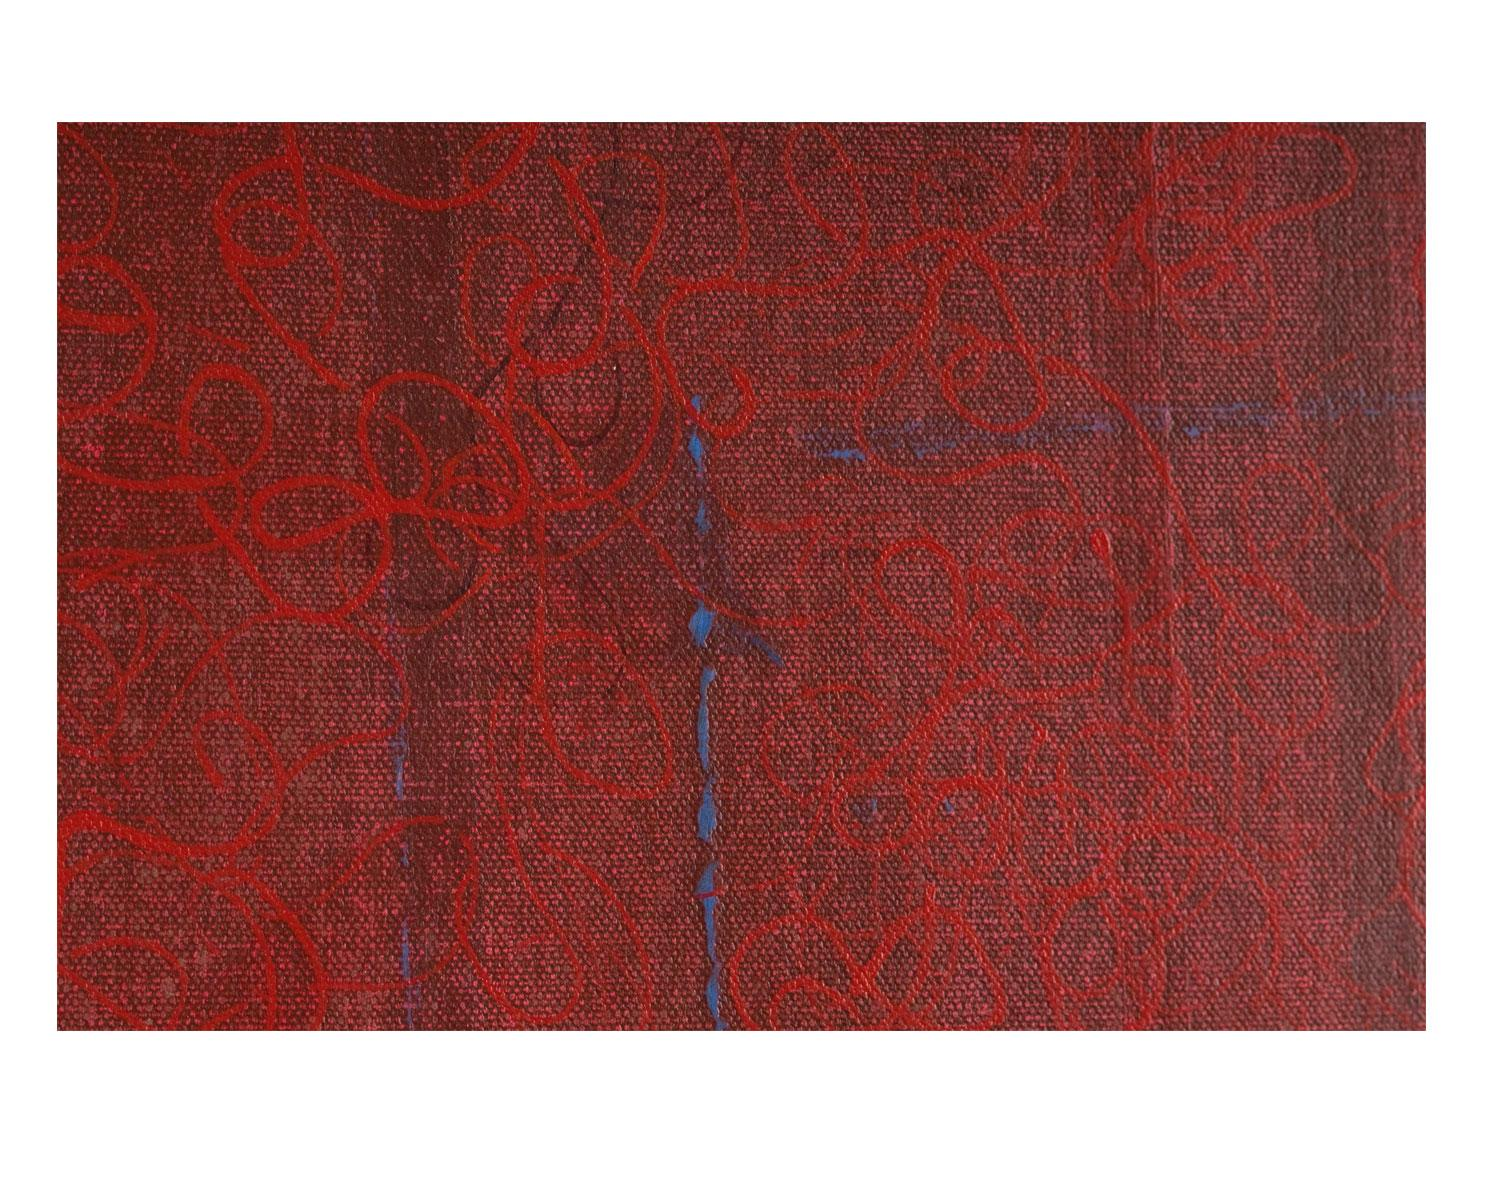 Untitled four panels detail (red)